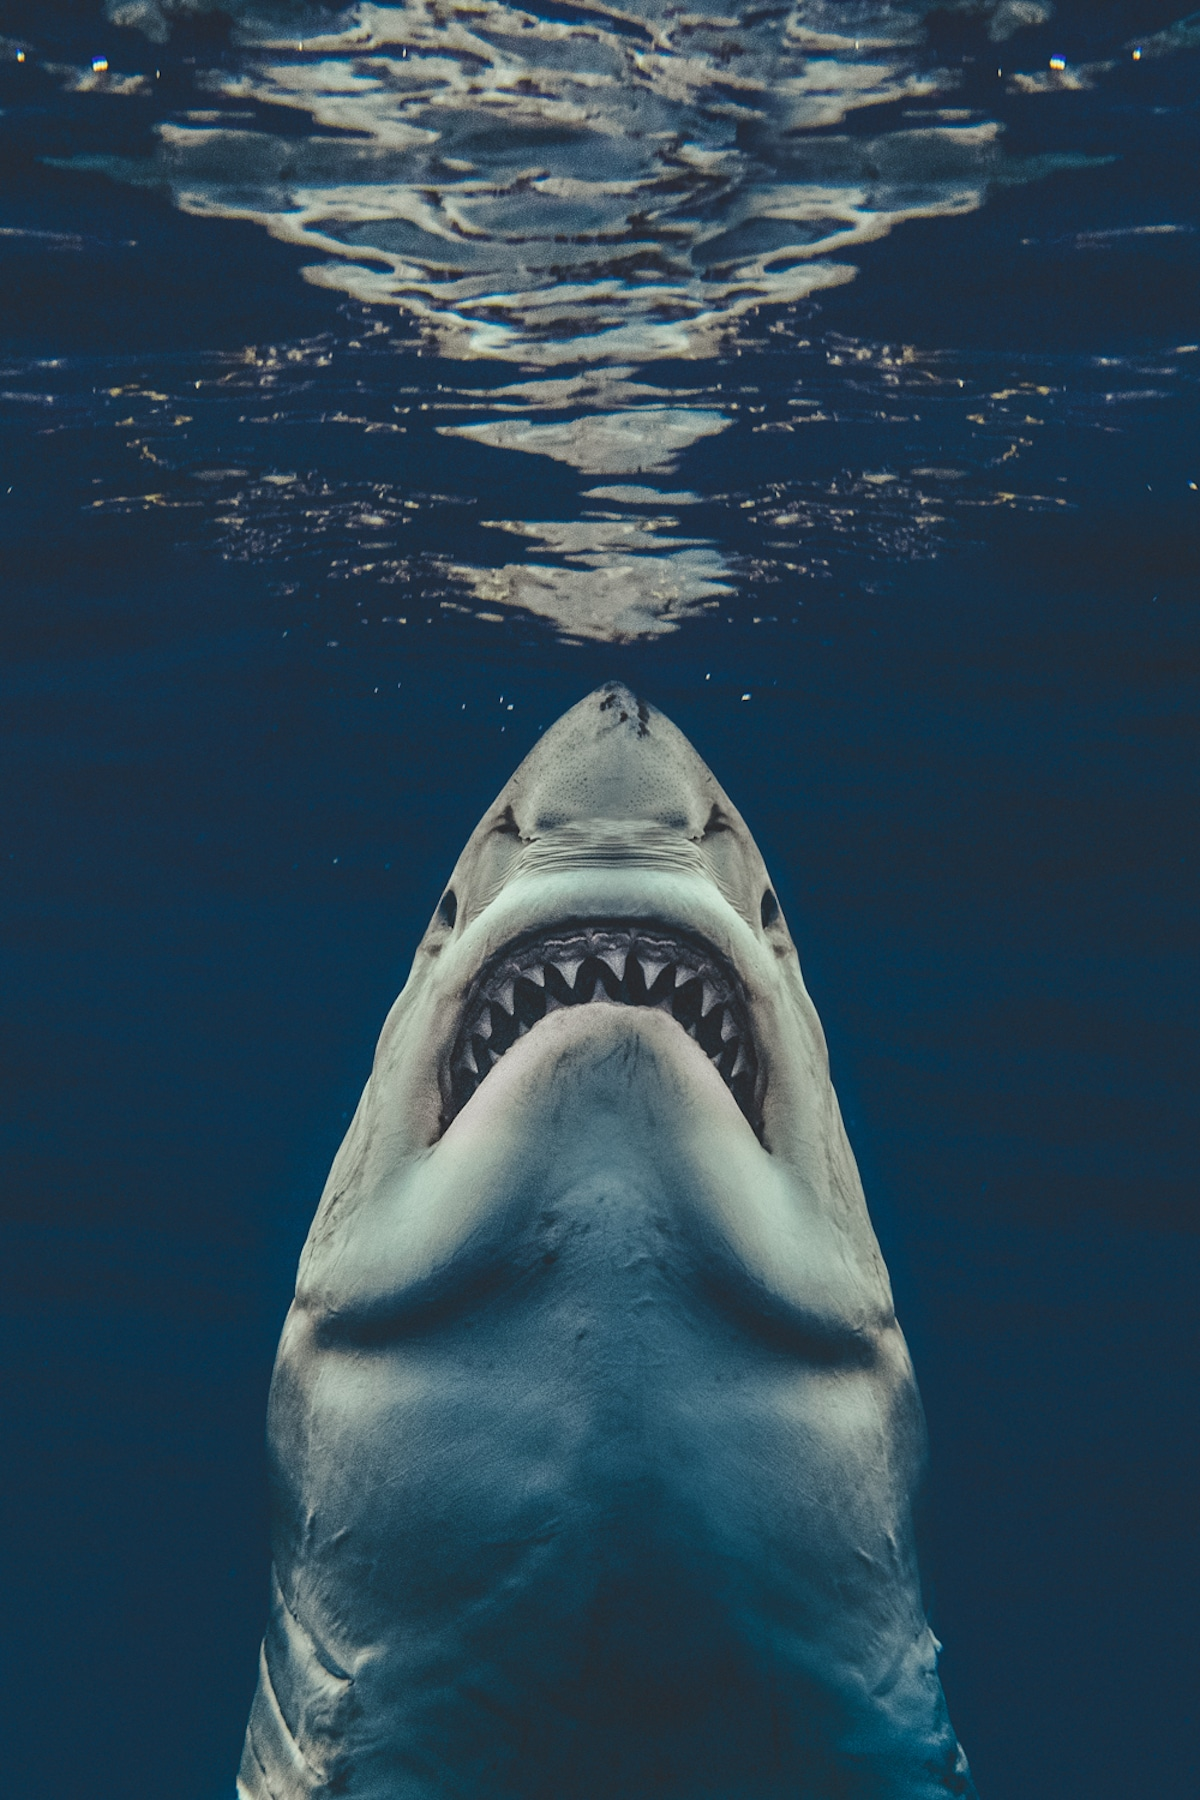 Brave Photographer Recreated 'Jaws' Poster with Real Great White Shark